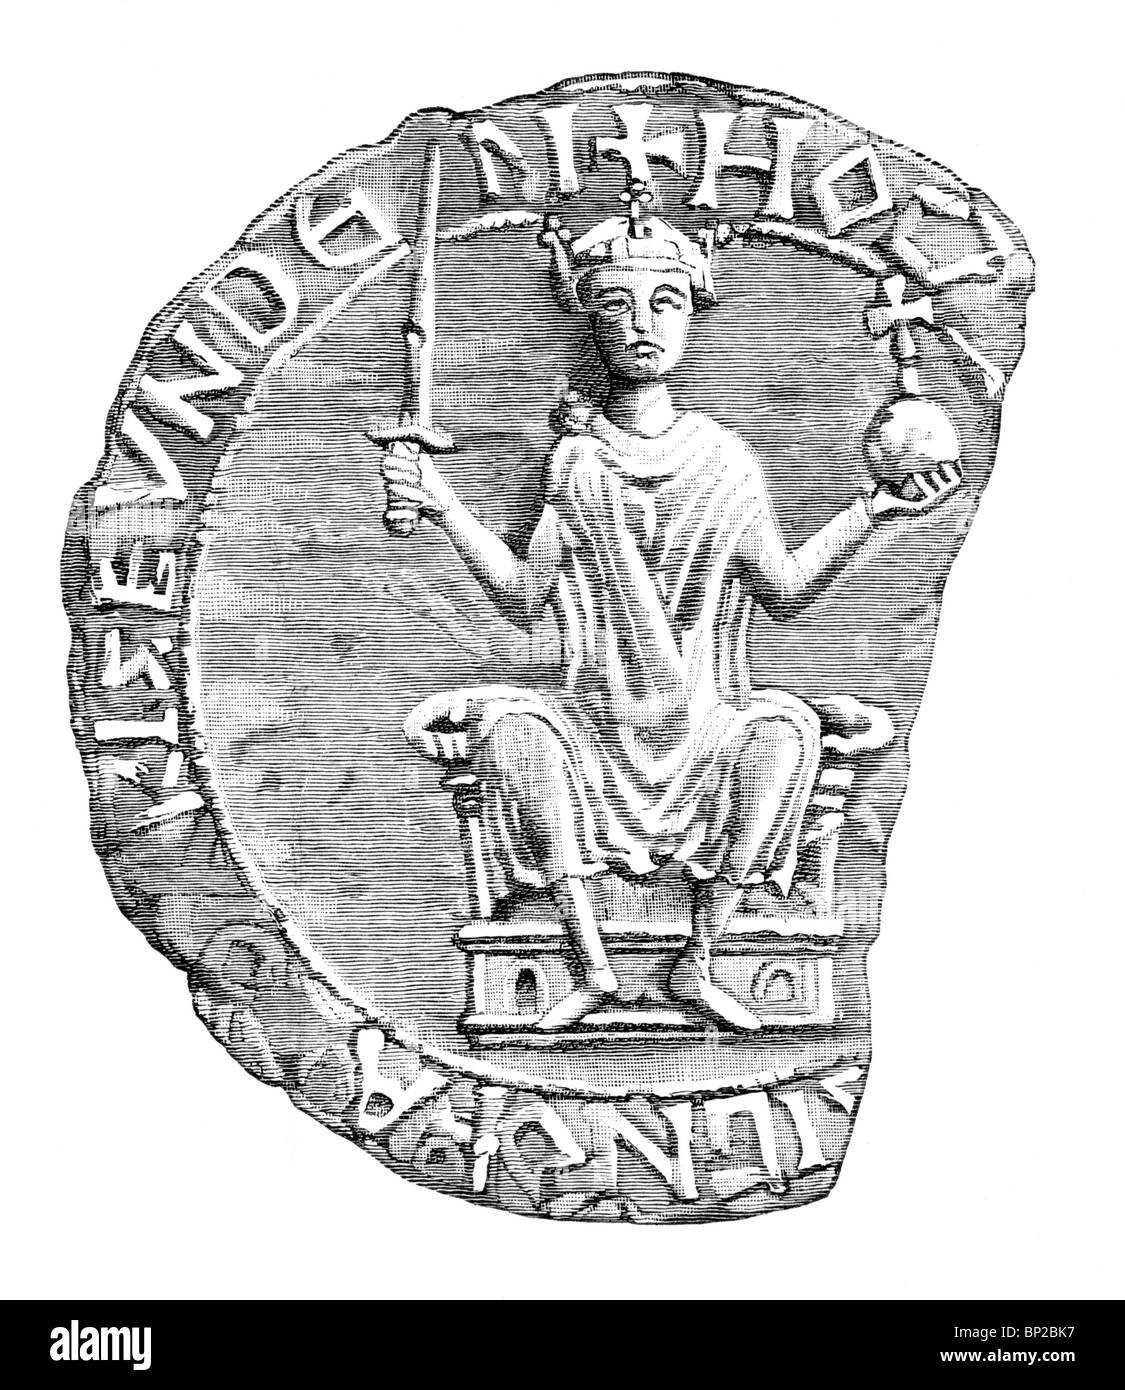 Black and White Illustration; 11th century; The Great Seal of William the Conqueror - Stock Image